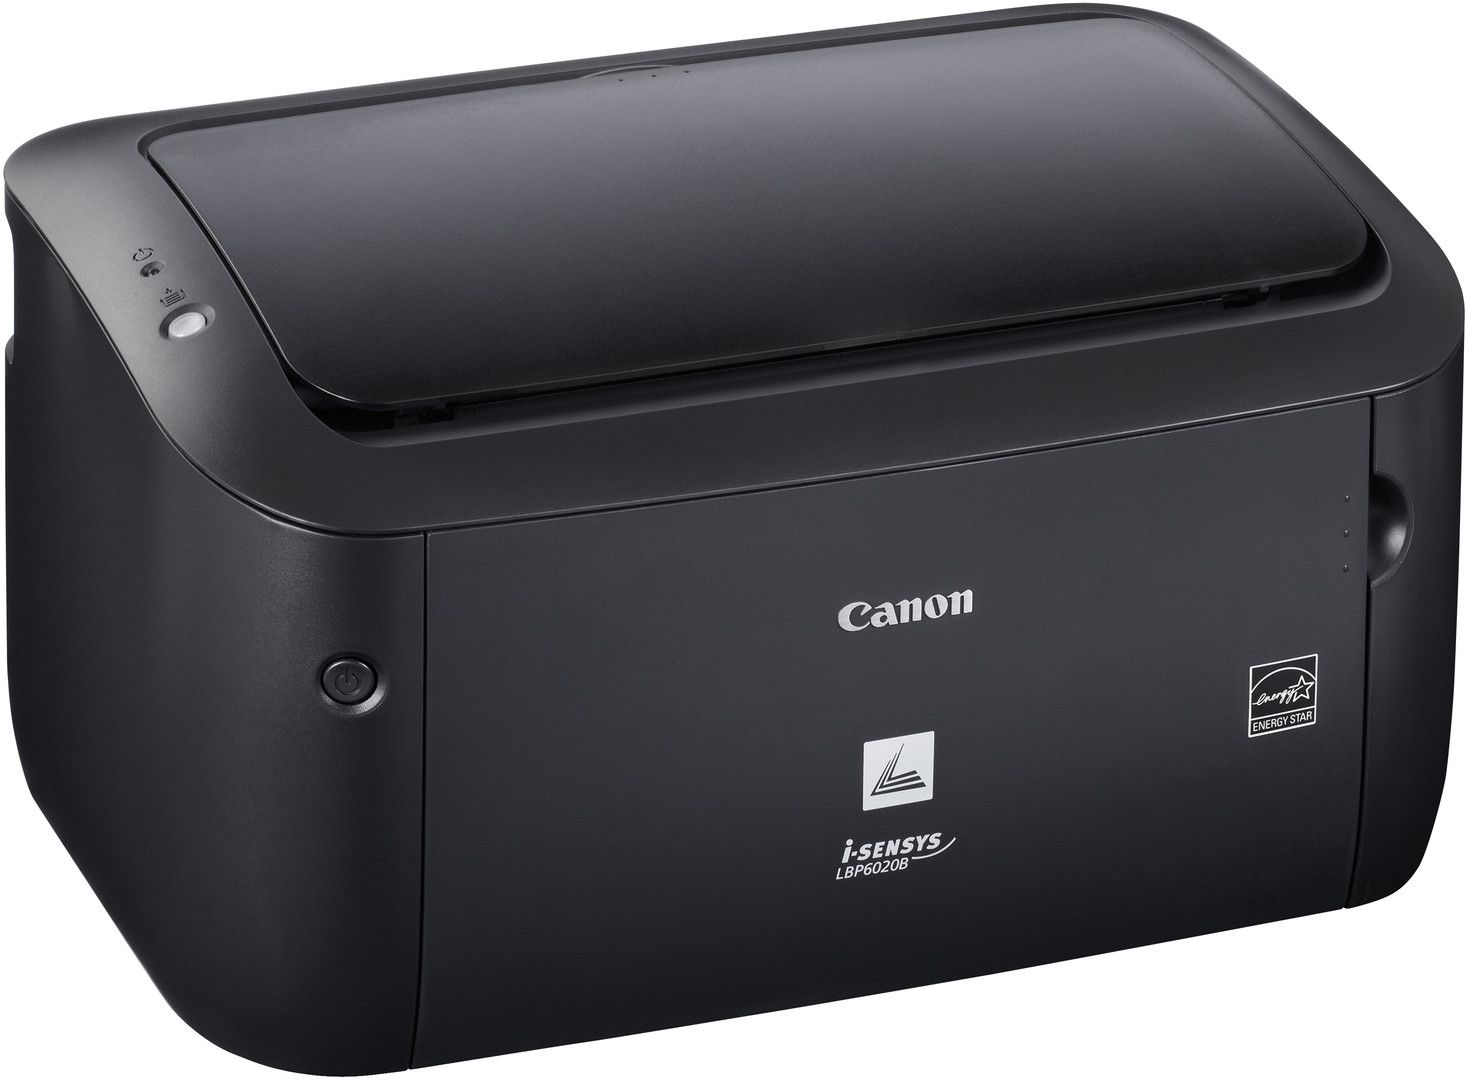 Canon i-sensys lbp6020 laser printers canon south africa.